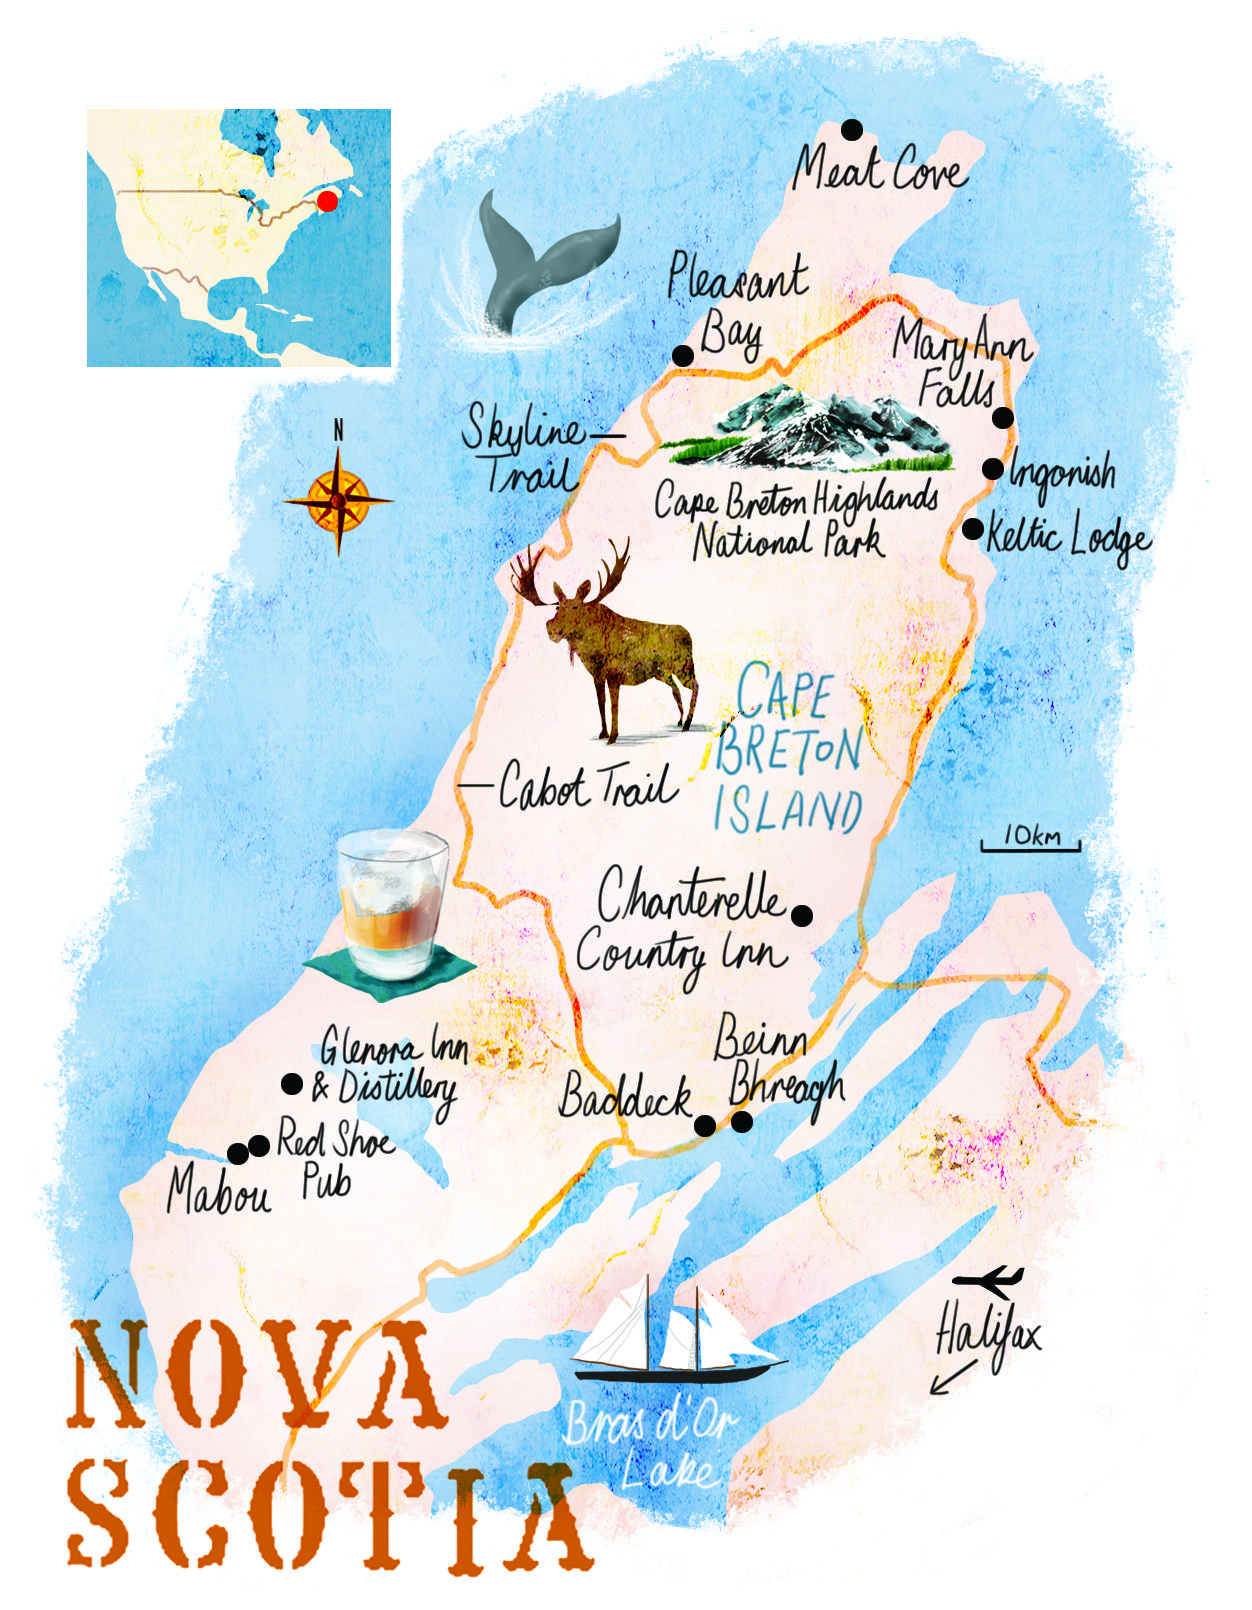 Nova Scotia map by Scott Jessop April 2016 issue Nova Scotia